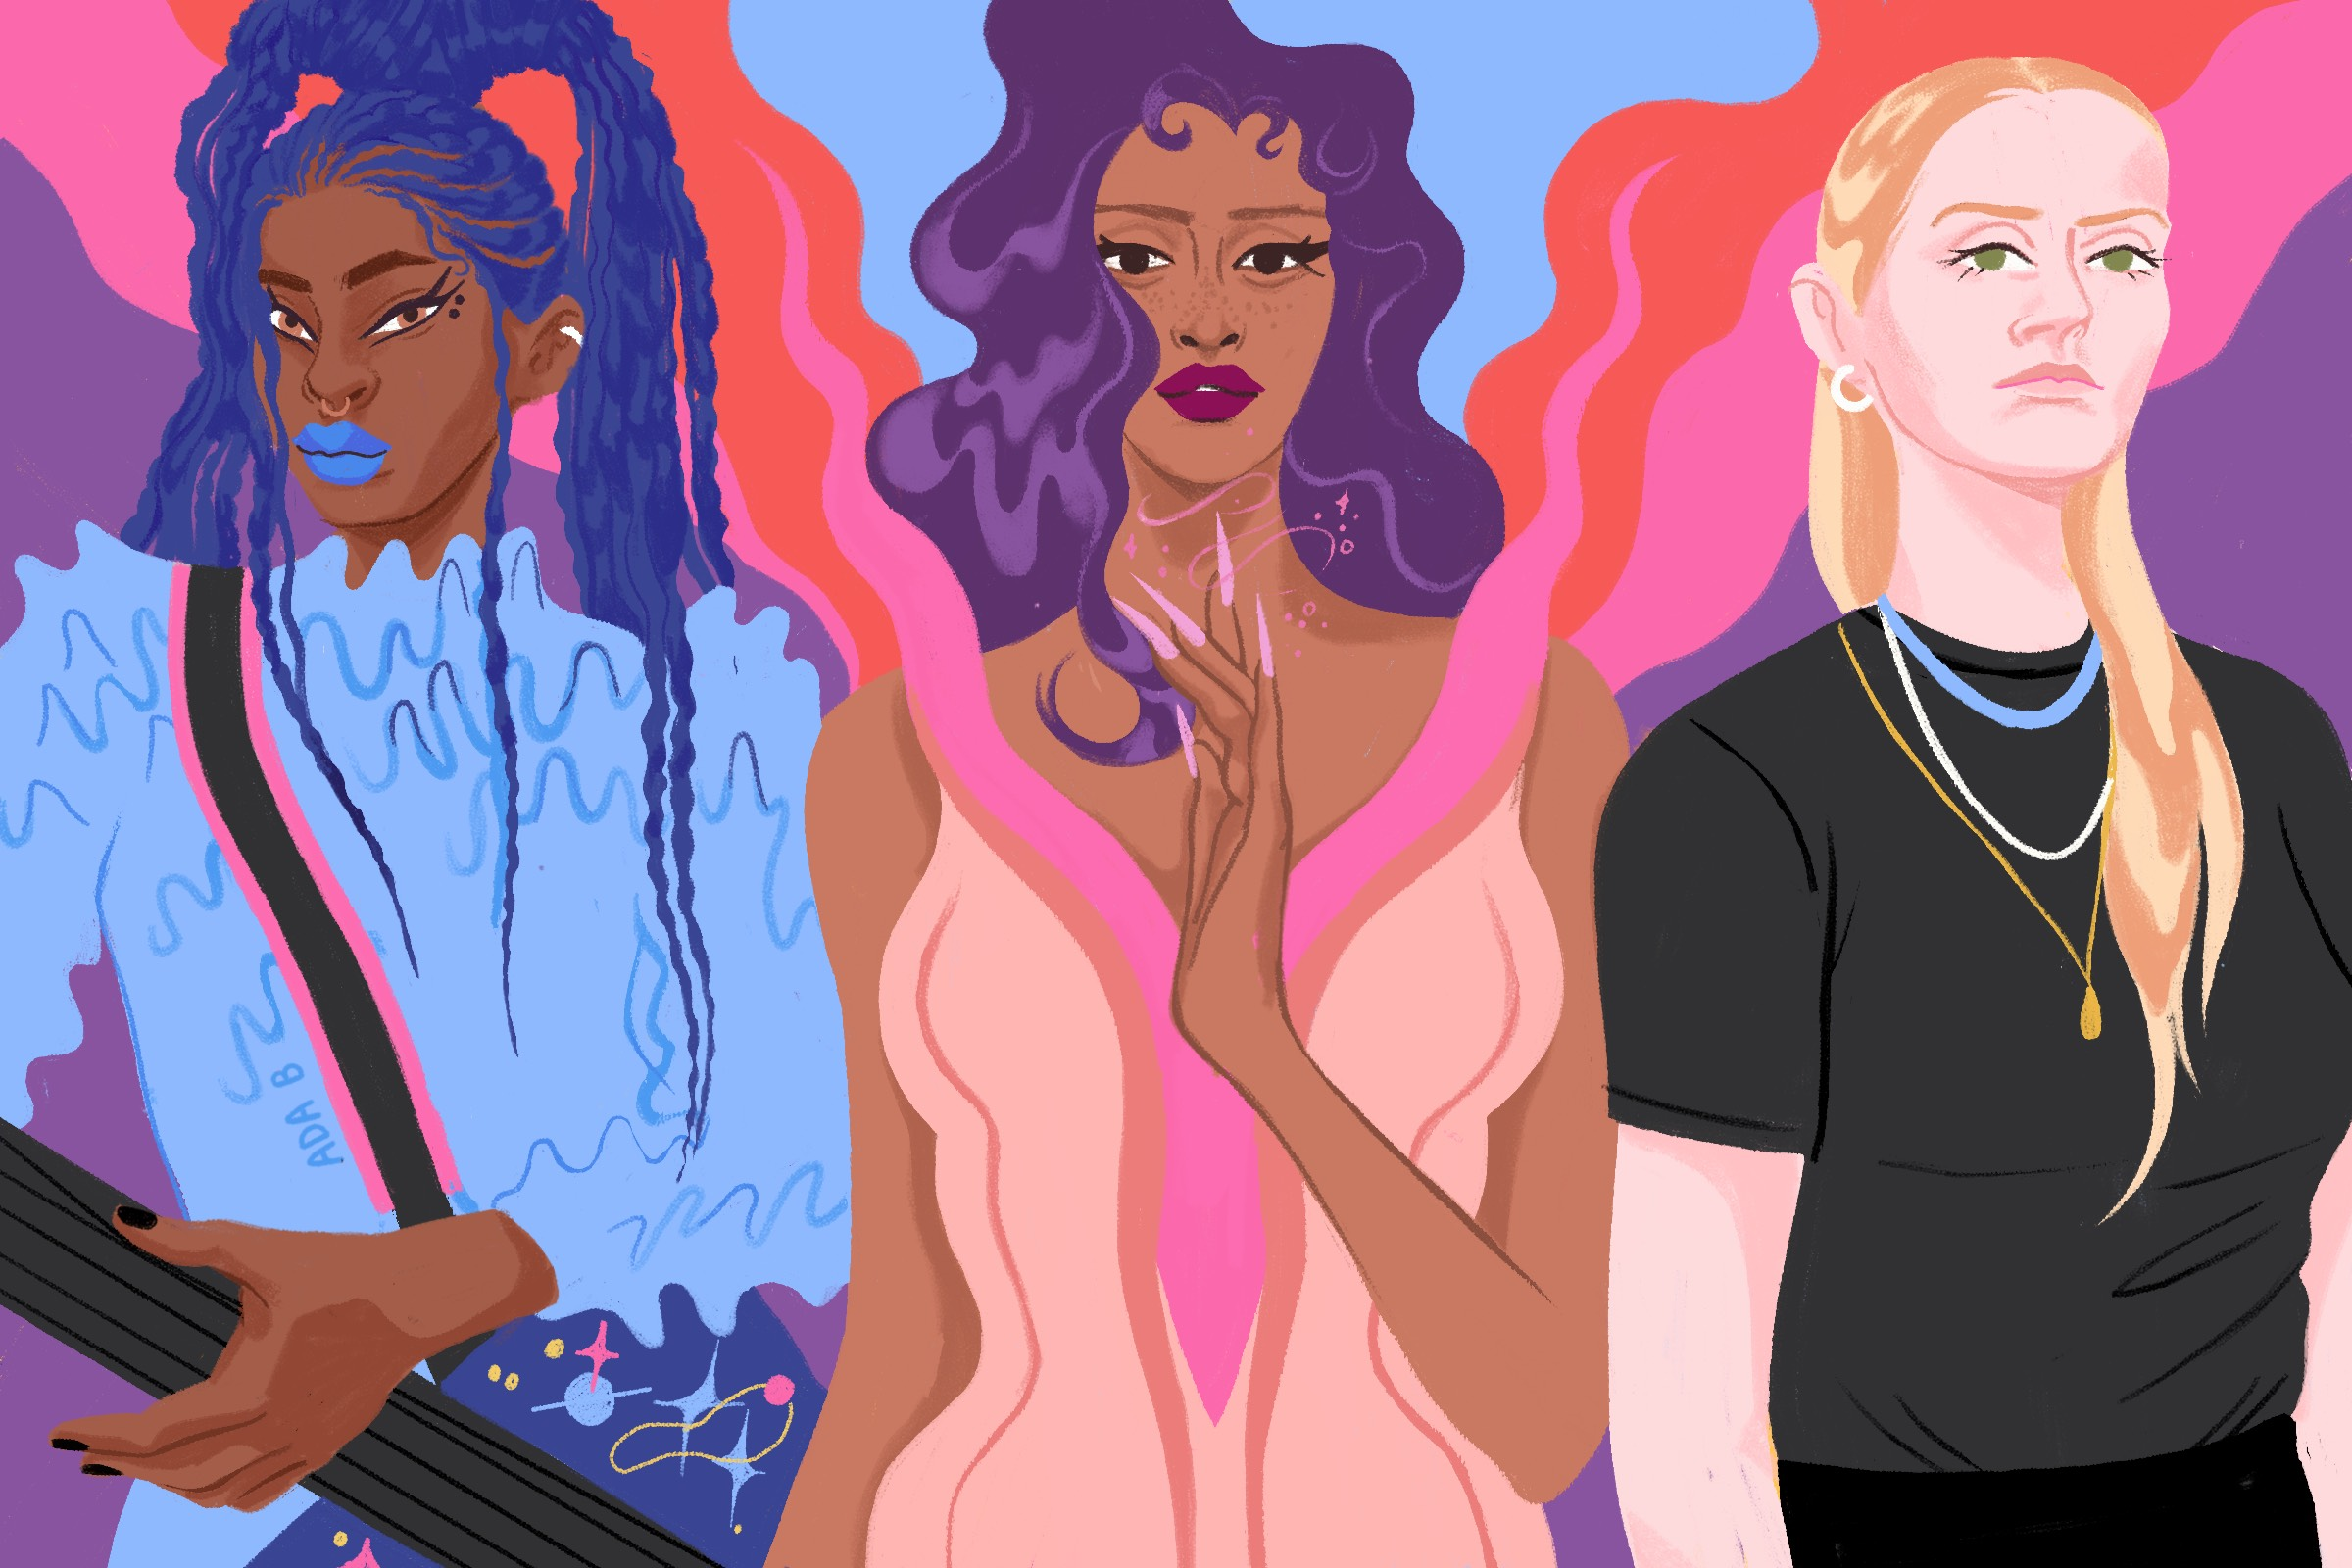 A colorful illustration of WILLOW, left, a Black woman with blue hair, Doja Cat, a Black woman with purple hair, and Charlotte Day Wilson, a white woman with blond hair.